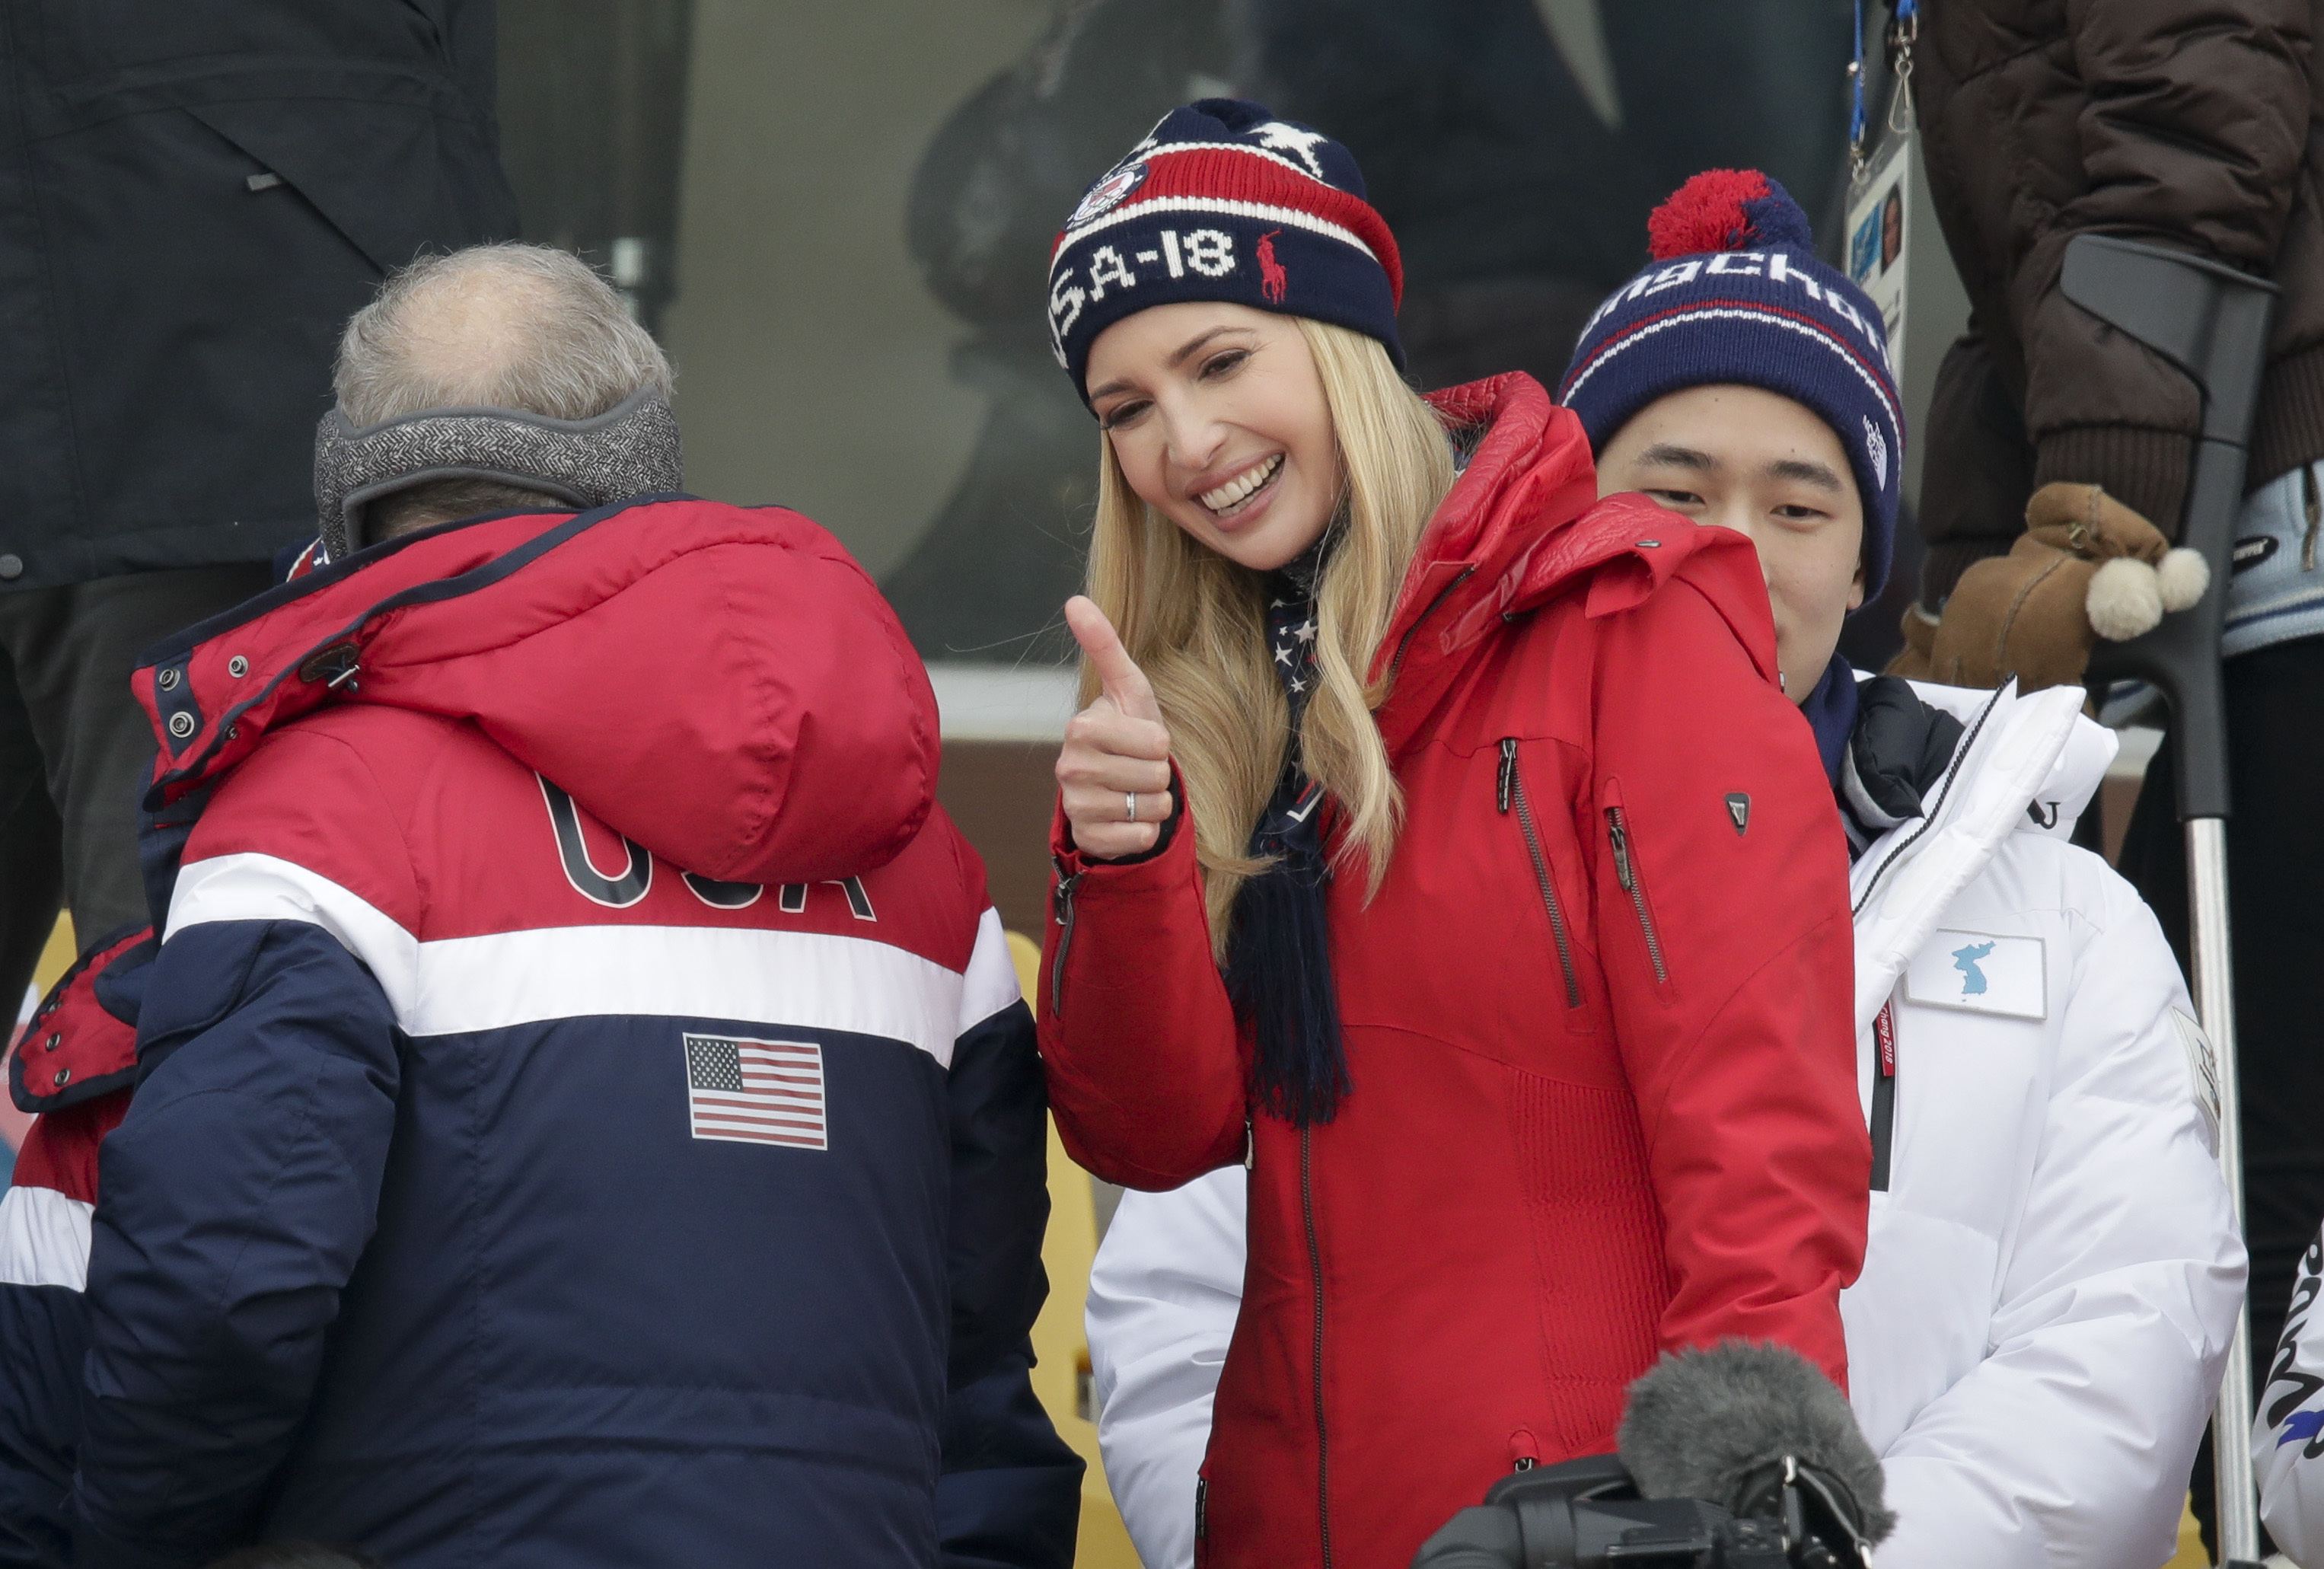 Ivanka Trump gestures during the men's Big Air snowboard competition at the 2018 Winter Olympics in Pyeongchang, South Korea, Saturday, Feb. 24, 2018. (AP Photo/Dmitri Lovetsky)